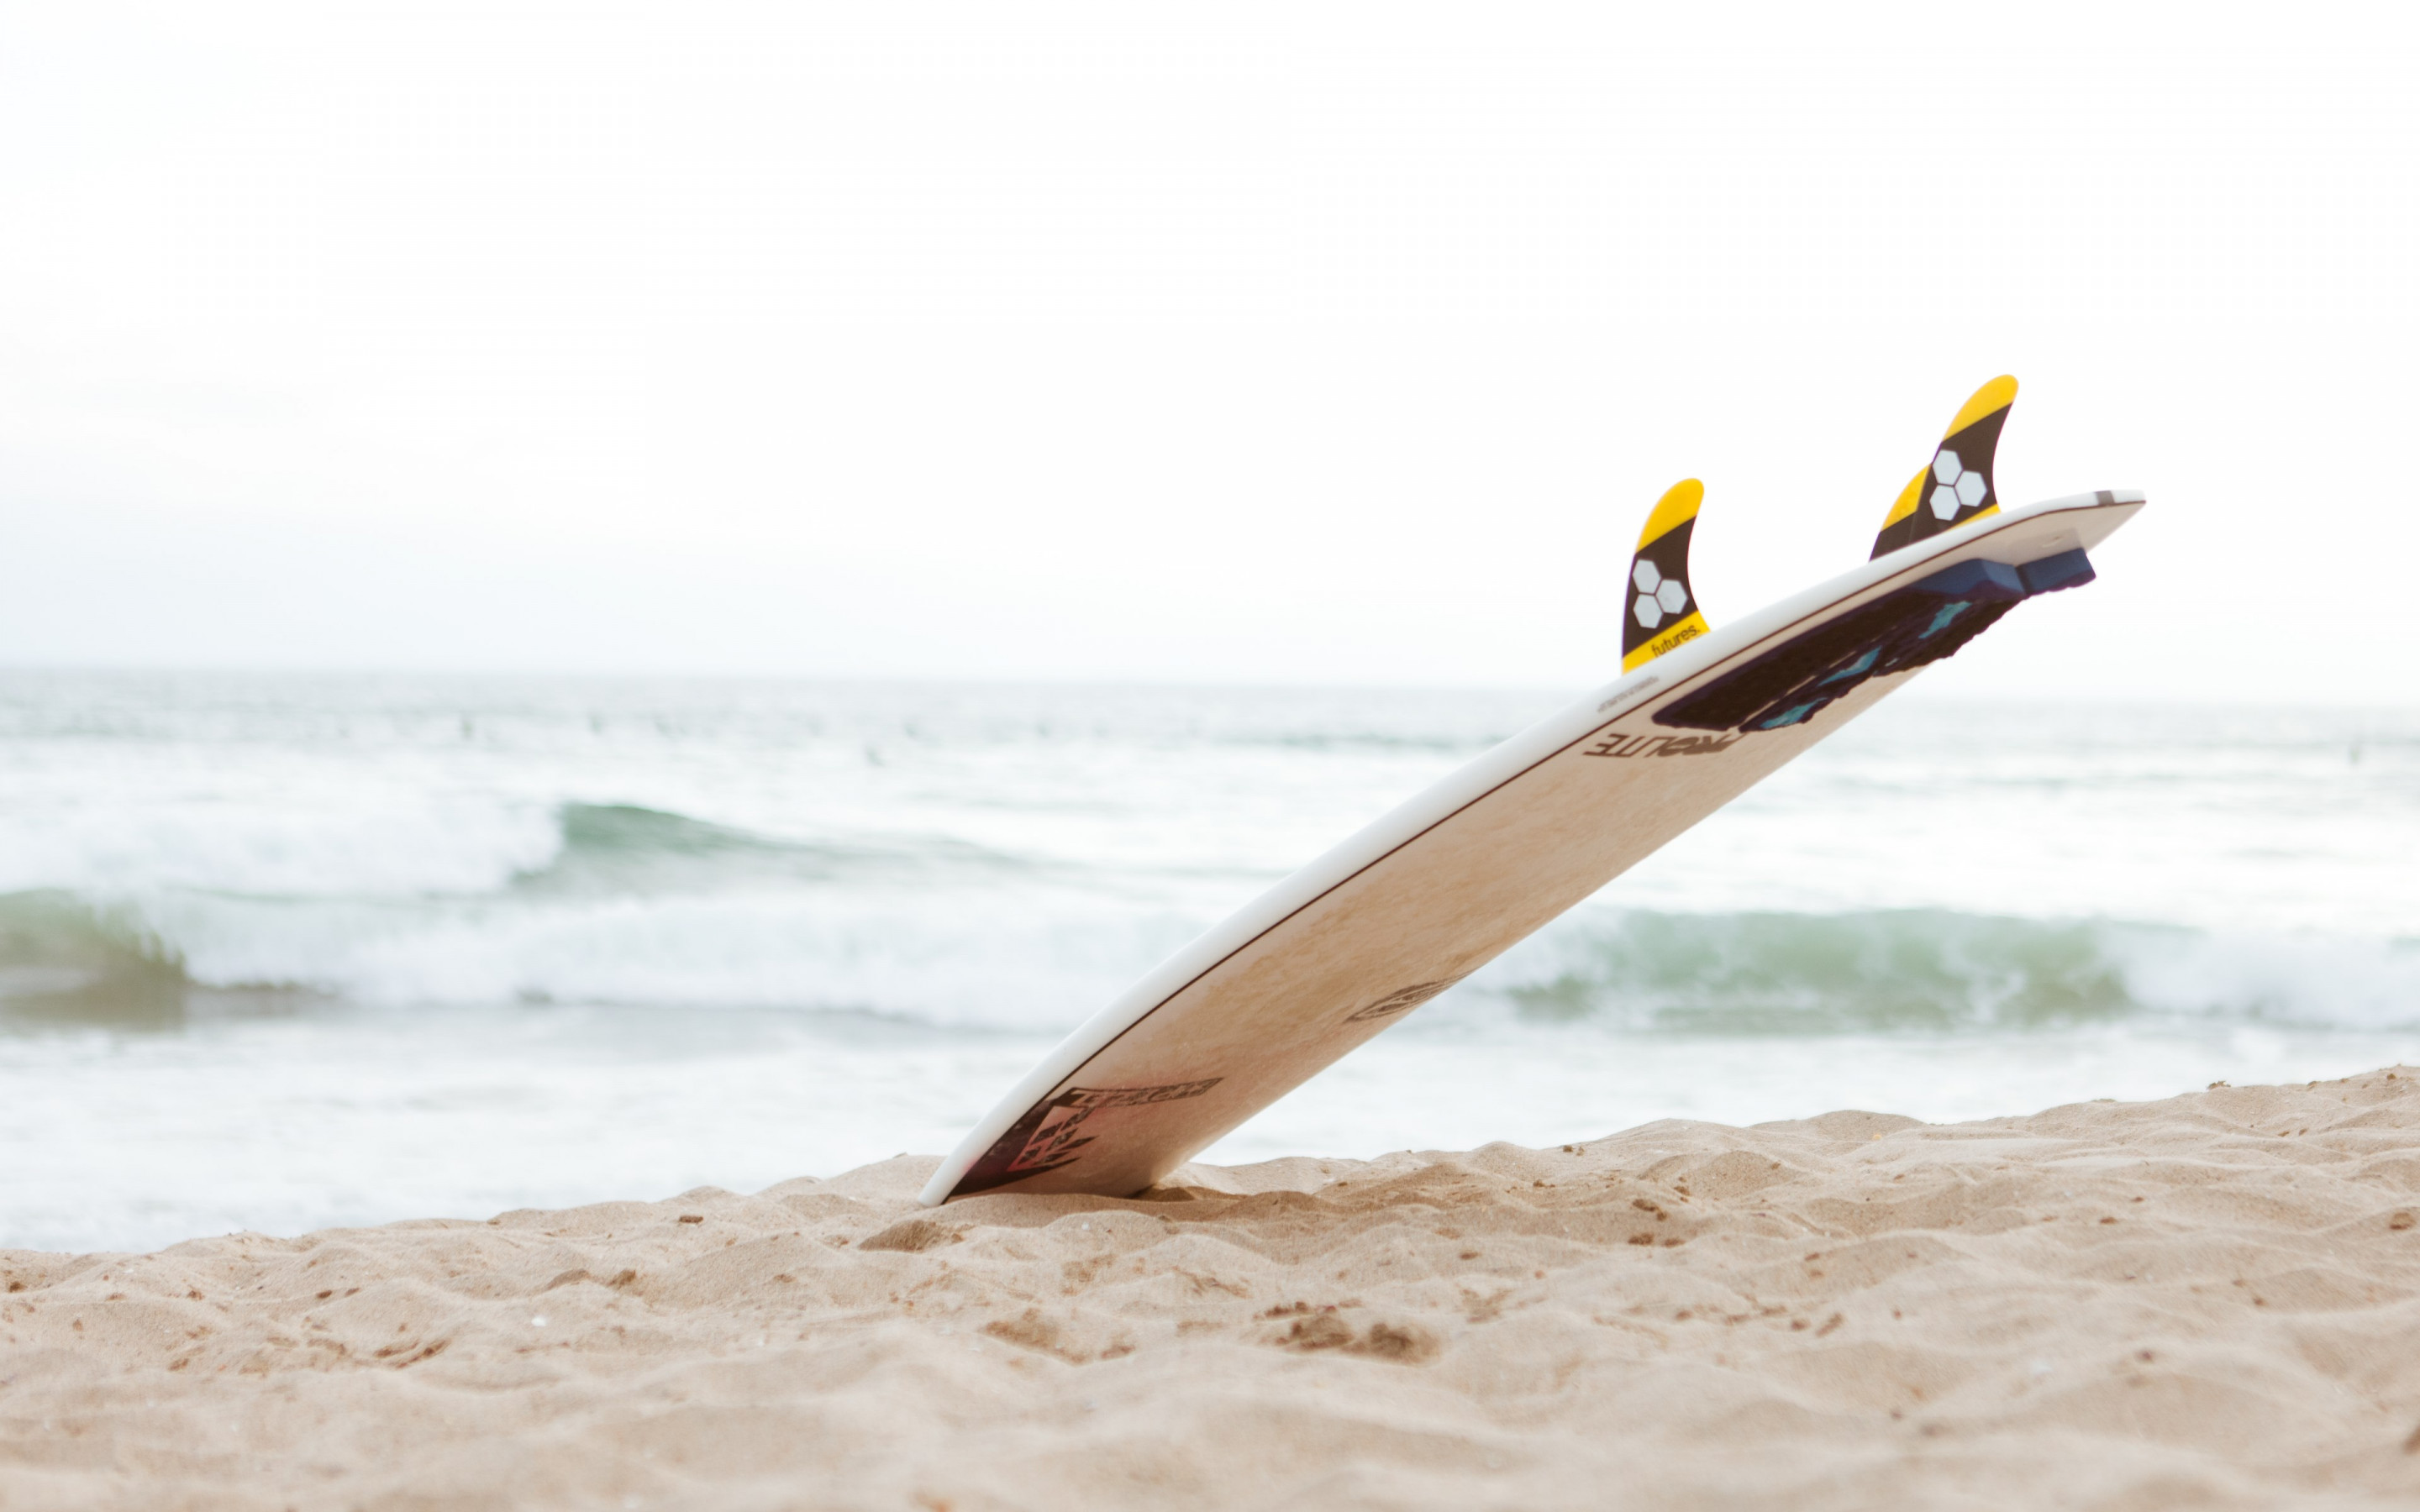 Surf board on the beach | 2880x1800 wallpaper